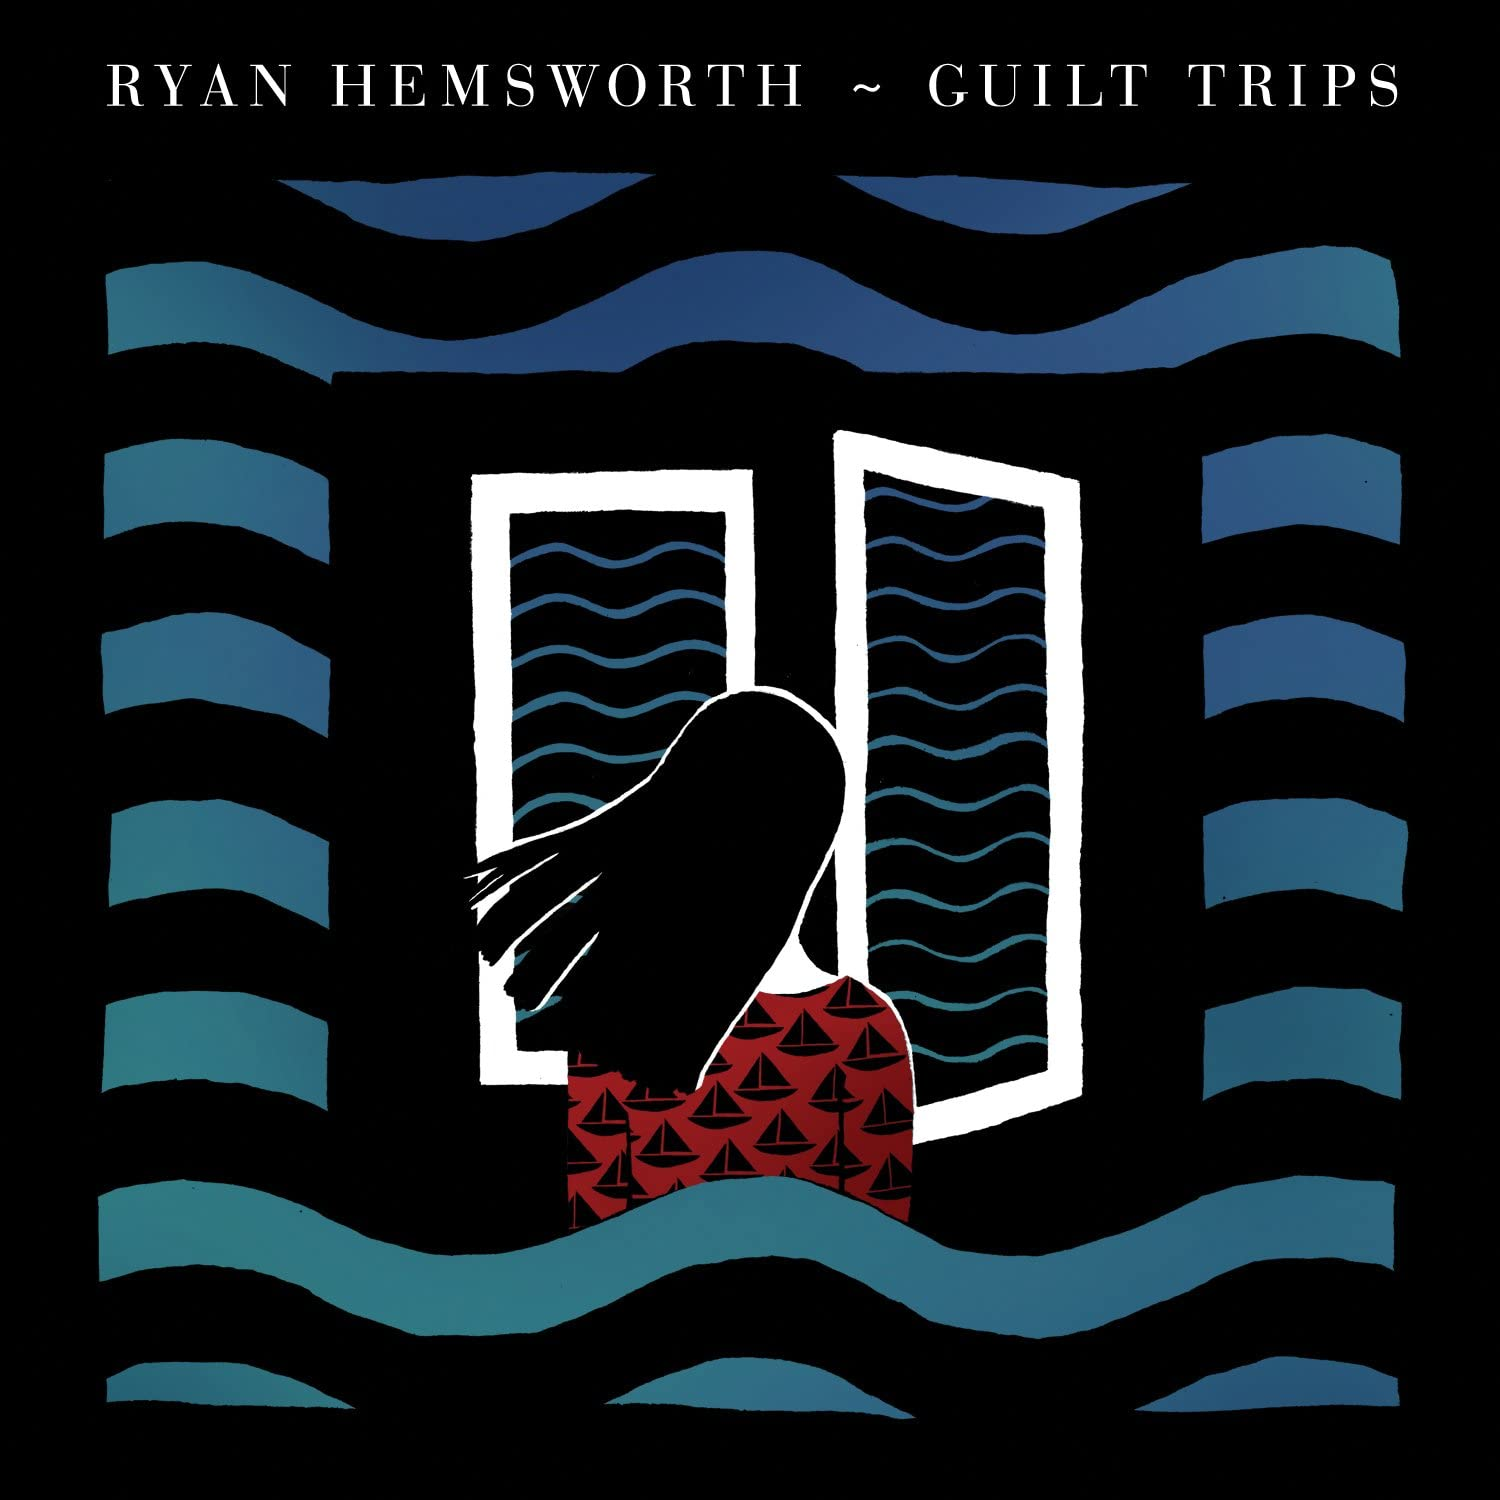 Hemsworth, Ryan/Guilt Trips [LP]